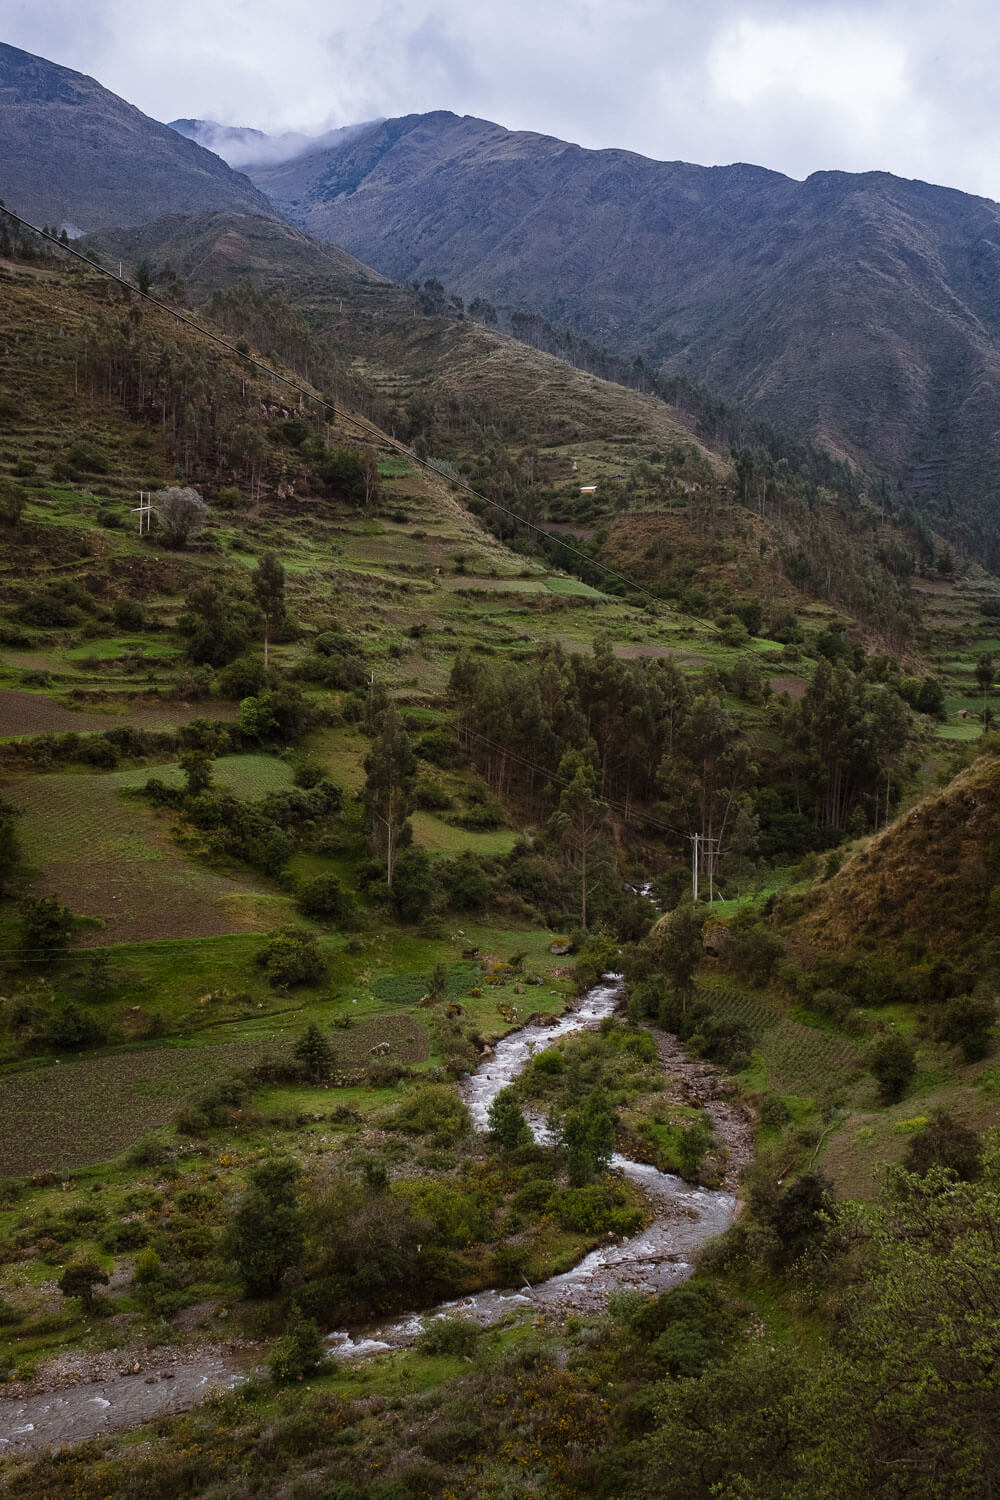 """View in the Andes, The Sacred Valley, Peru. Travel photography and guide by © Natasha Lequepeys for """"And Then I Met Yoko"""". #travelguide #photoblog #fujifilm #machupicchu #sacredvalleyitinerary #travel"""